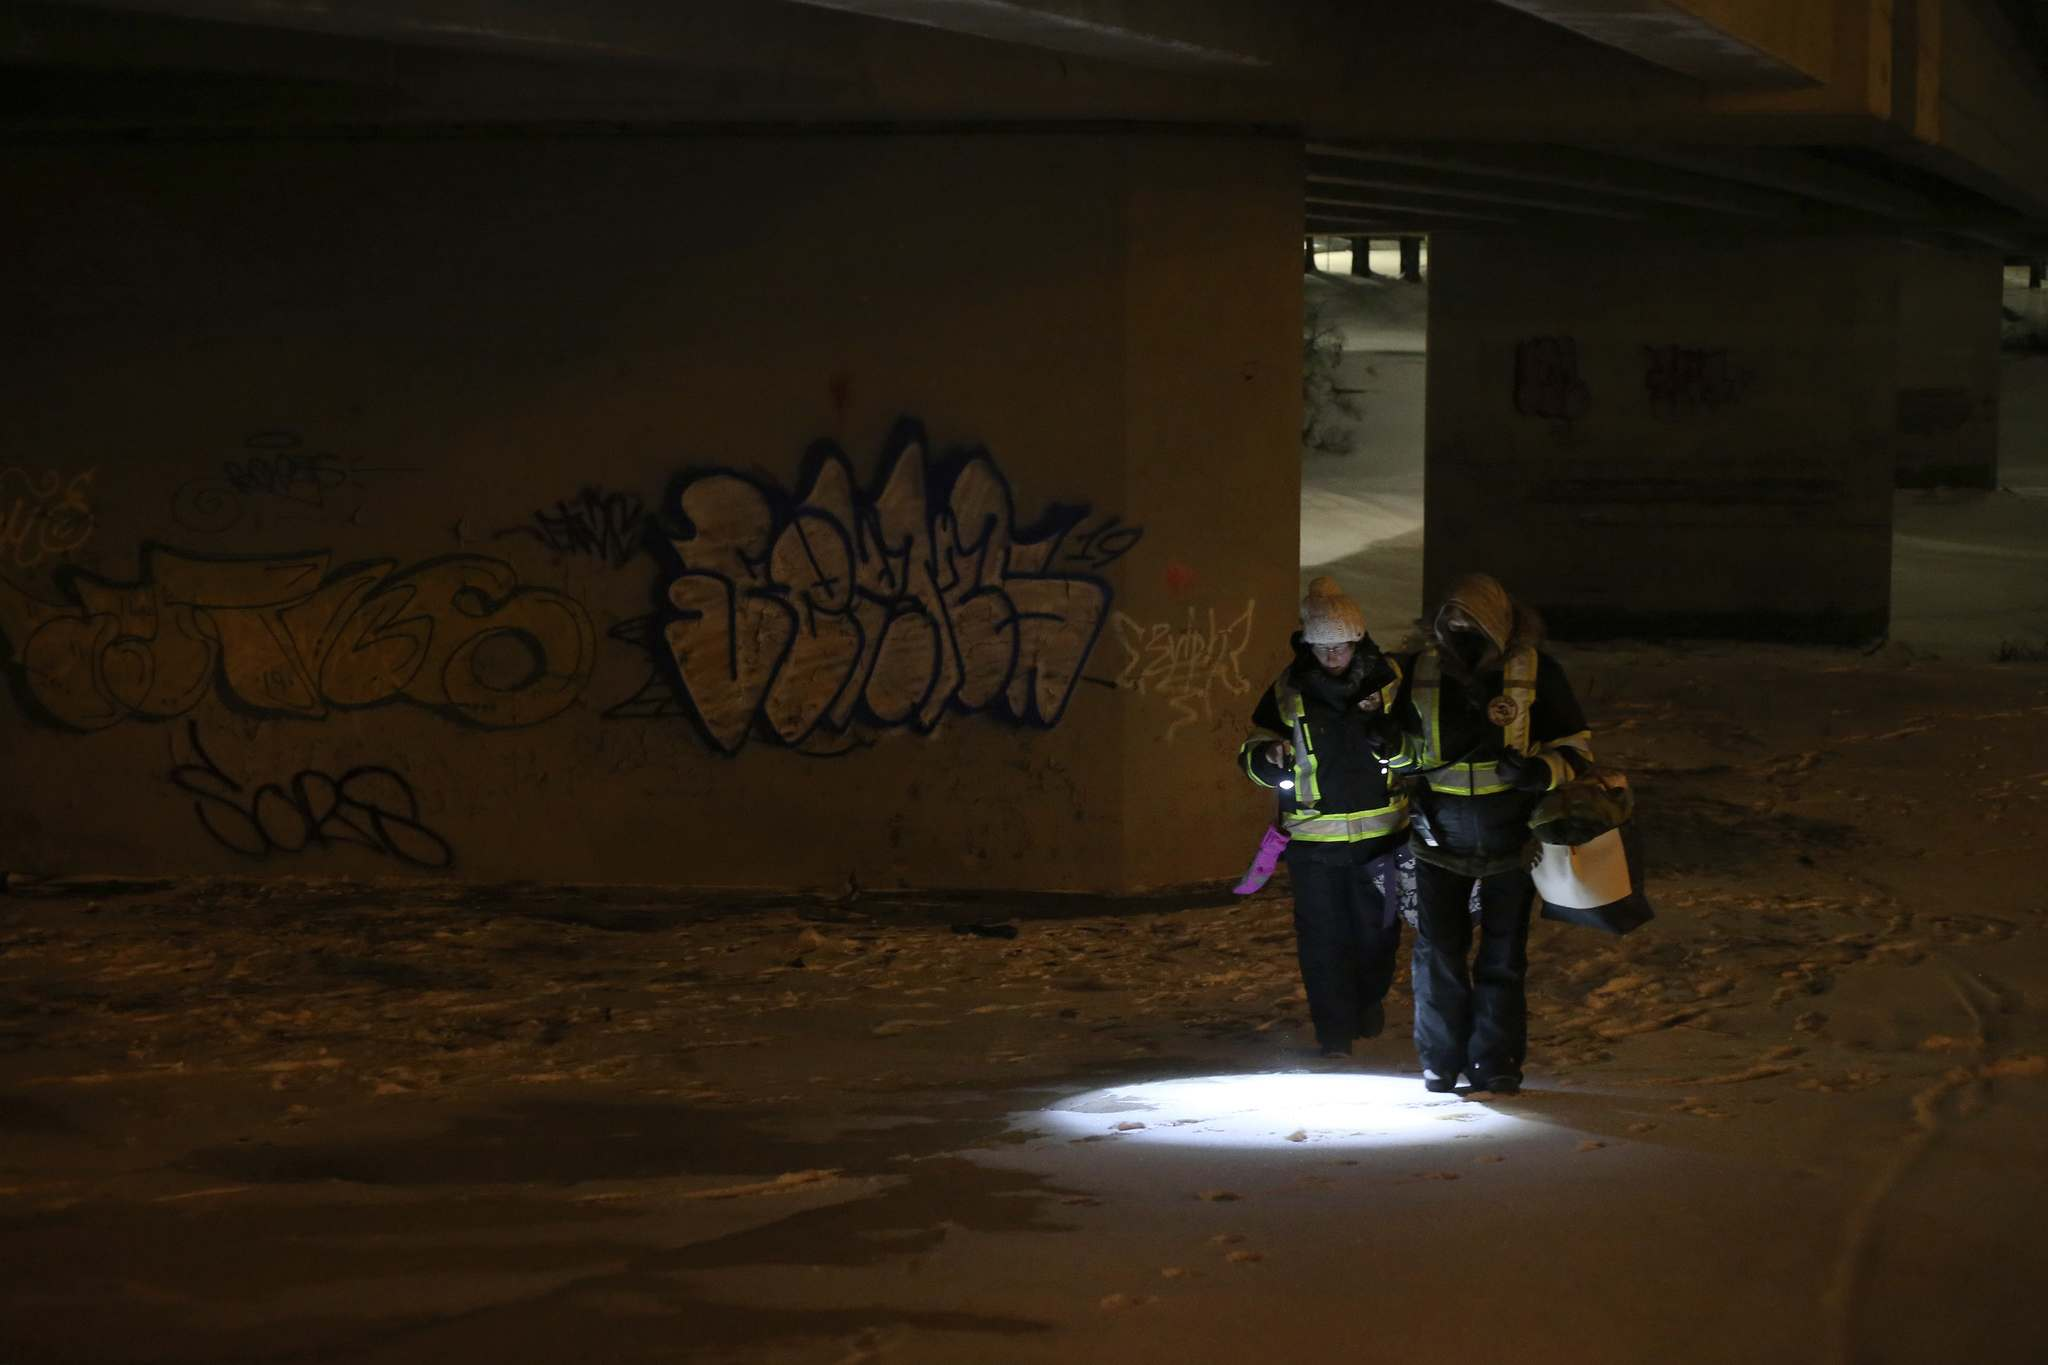 SHANNON VANRAES / WINNIPEG FREE PRESS</p><p>Lori Anderson and Rebecca Ford check for people in need of assistance under the Maryland Bridge on January 10, 2020 during a patrol with the West Broadway Bear Clan Patrol.</p>